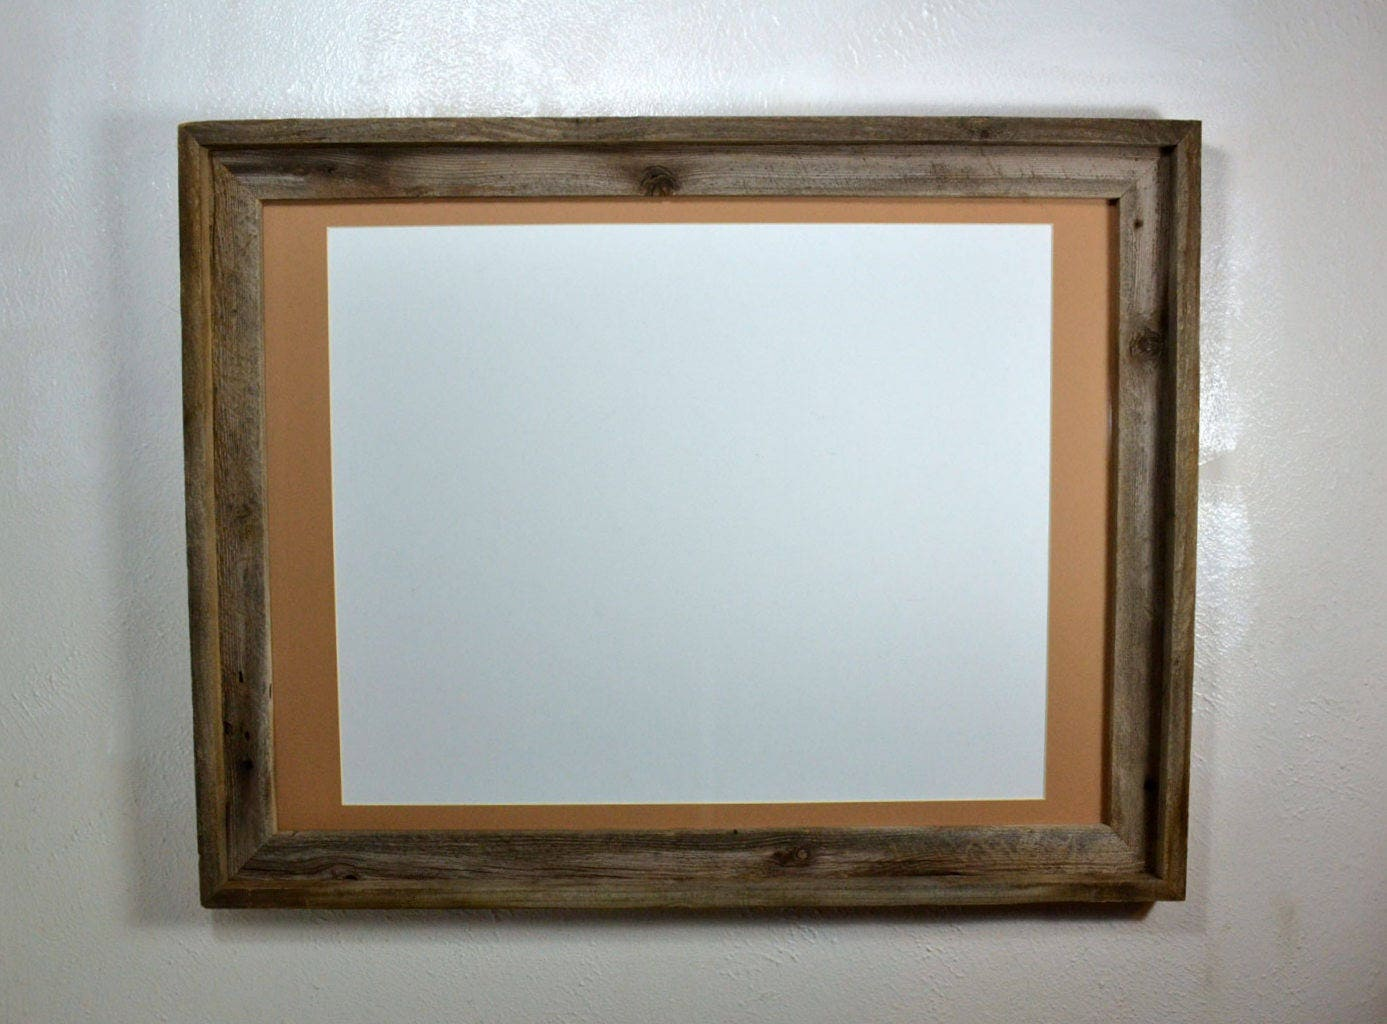 18x24 Rustic Wood Frame With Tan Mat For 16x20 11x17 12x18